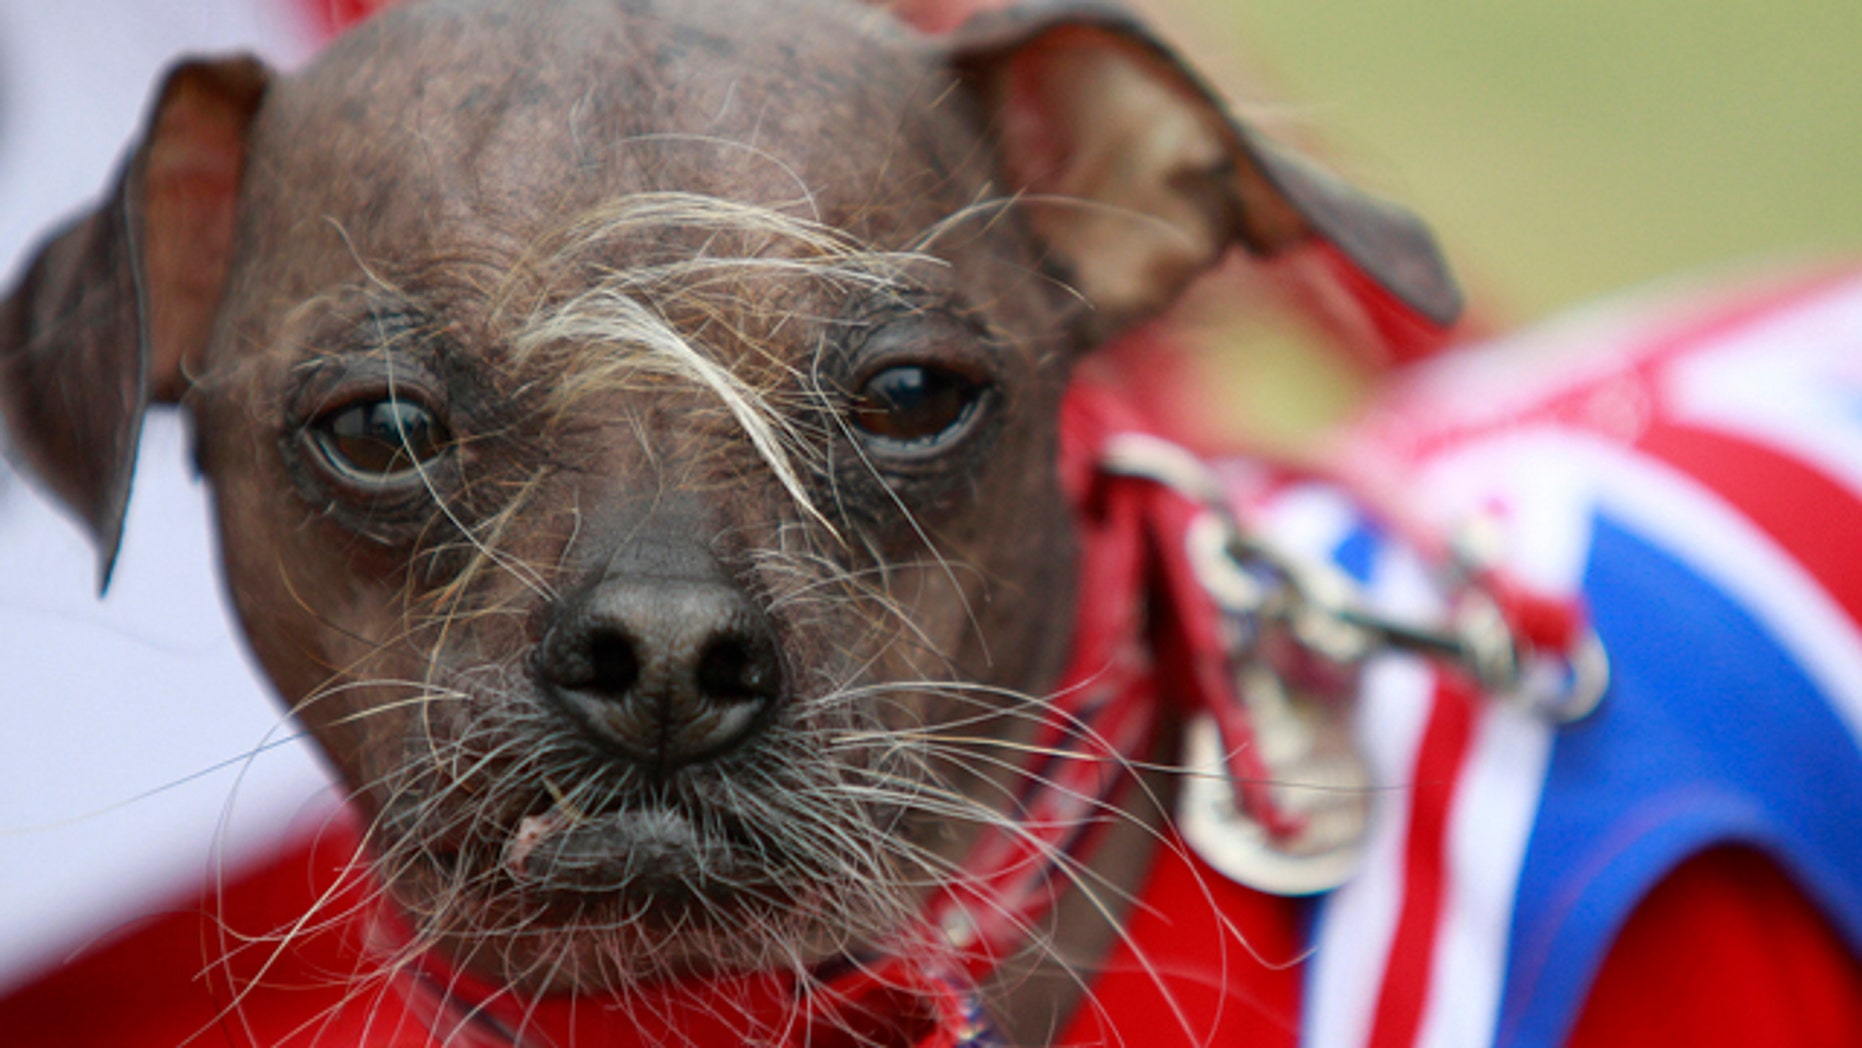 June 22, 2012: Suzanne Marta holds up her Chinese crested dog, Handsome Hector, Mugly, a Chinese crested dog, owned by Bev Nicholson of Peterborough, England won the title of World's Ugliest Dog at the Sonoma-Marin Fair in Petaluma, California. (AP/The Press Democrat, Beth Schlanker)